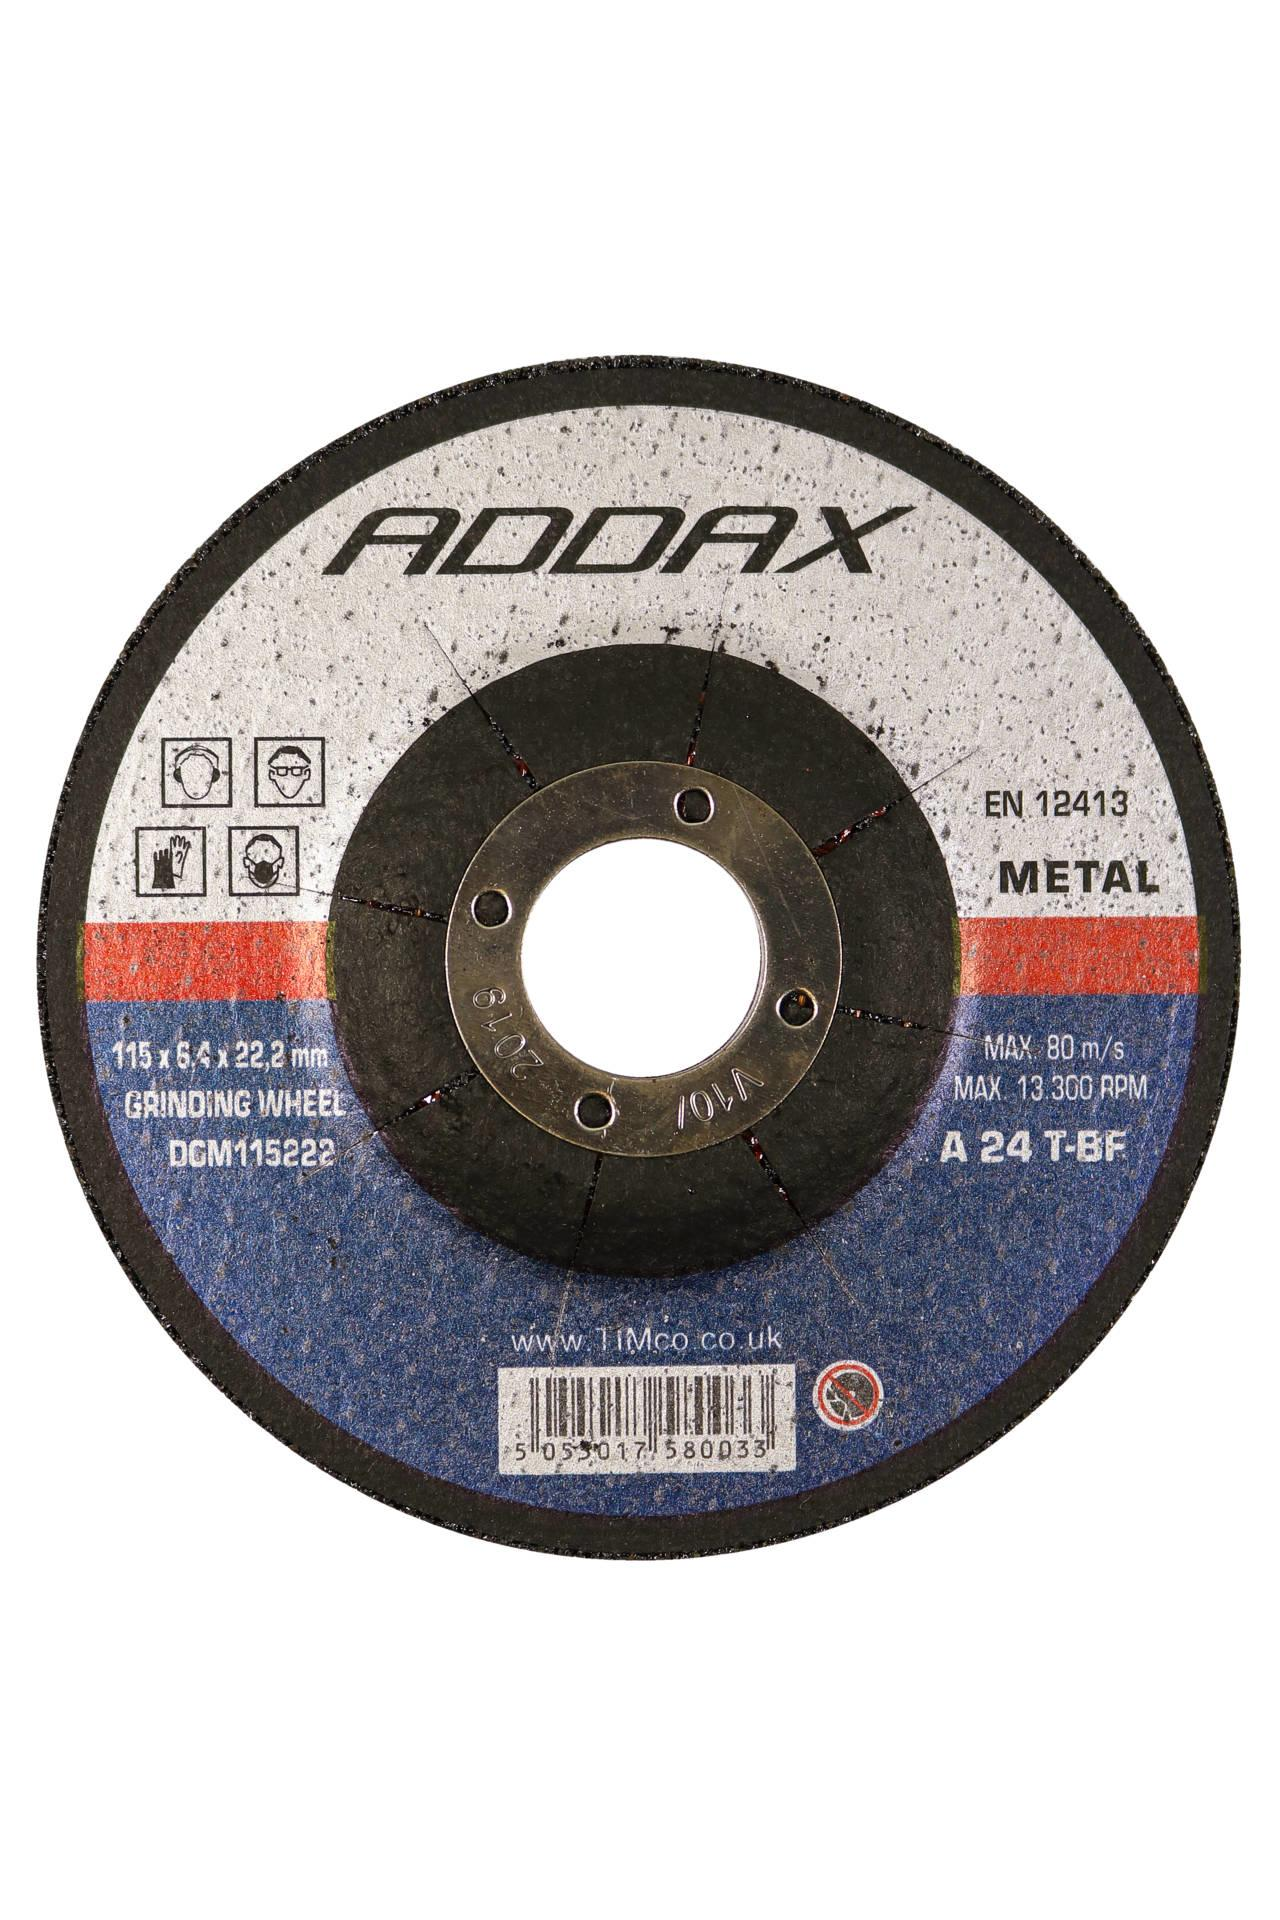 Addax Bonded Abrasive Disc - For Grinding Various Types of Steel (sold in packs of 5)